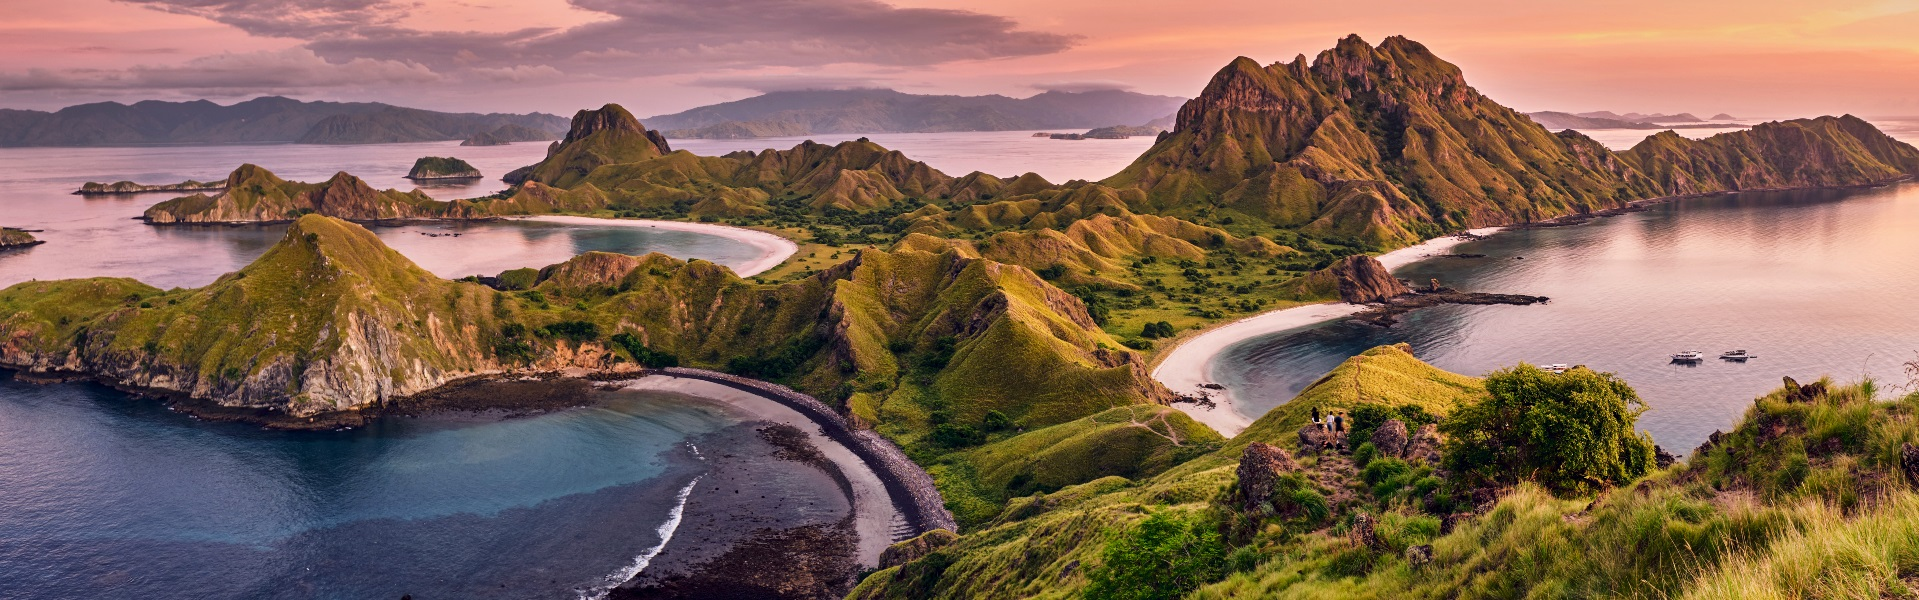 Incredible Indonesia Tour | Wendy Wu Tours